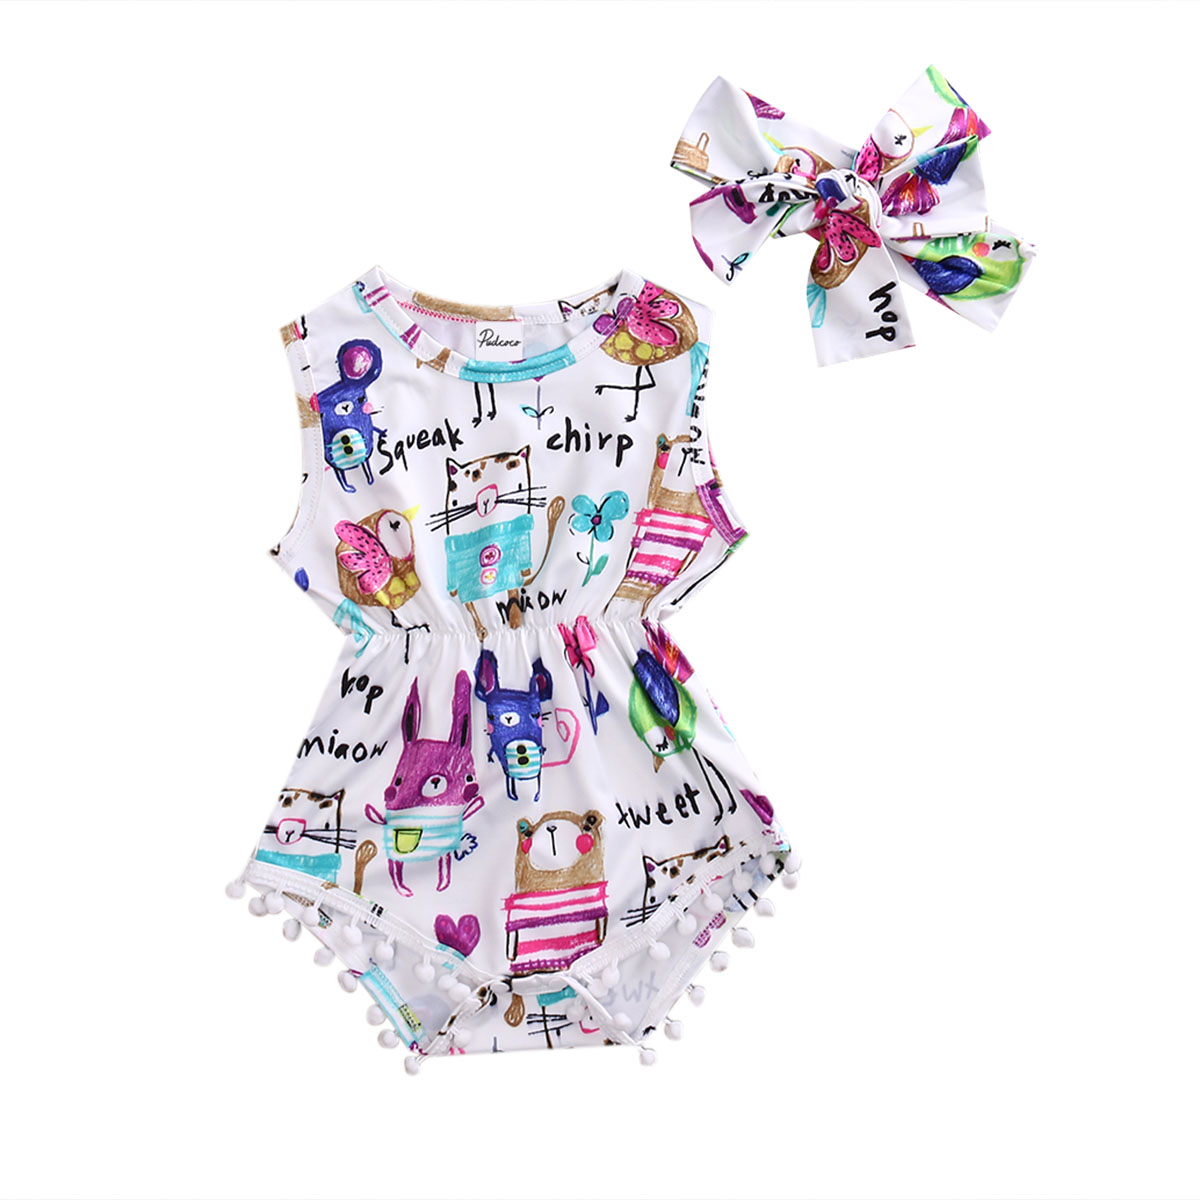 Newborn Toddler Infant Baby Girl Romper Jumpsuit Outfit Sunsuit bodysuit baby girl clothes Clothes newborn baby backless floral jumpsuit infant girls romper sleeveless outfit